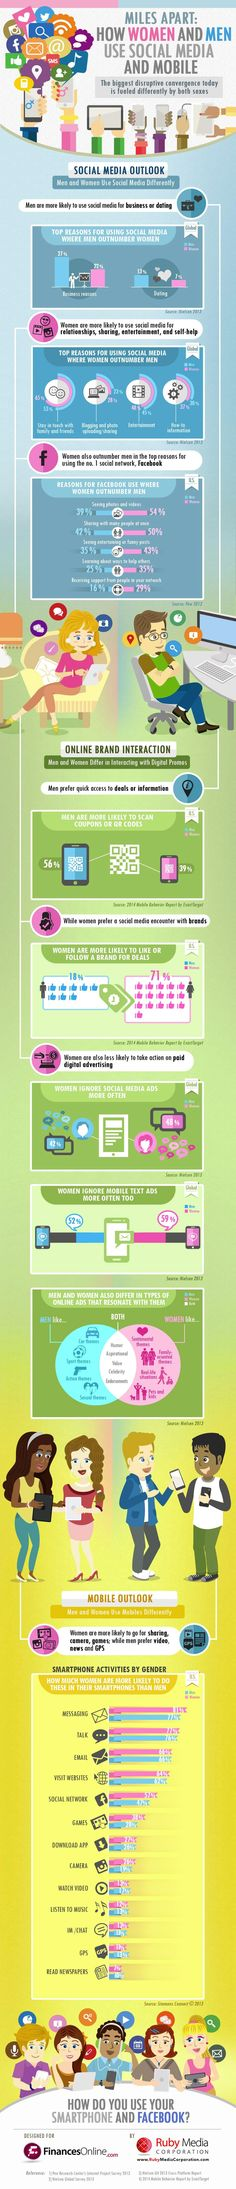 How #Women and #Men Use #SocialMedia and #Mobile